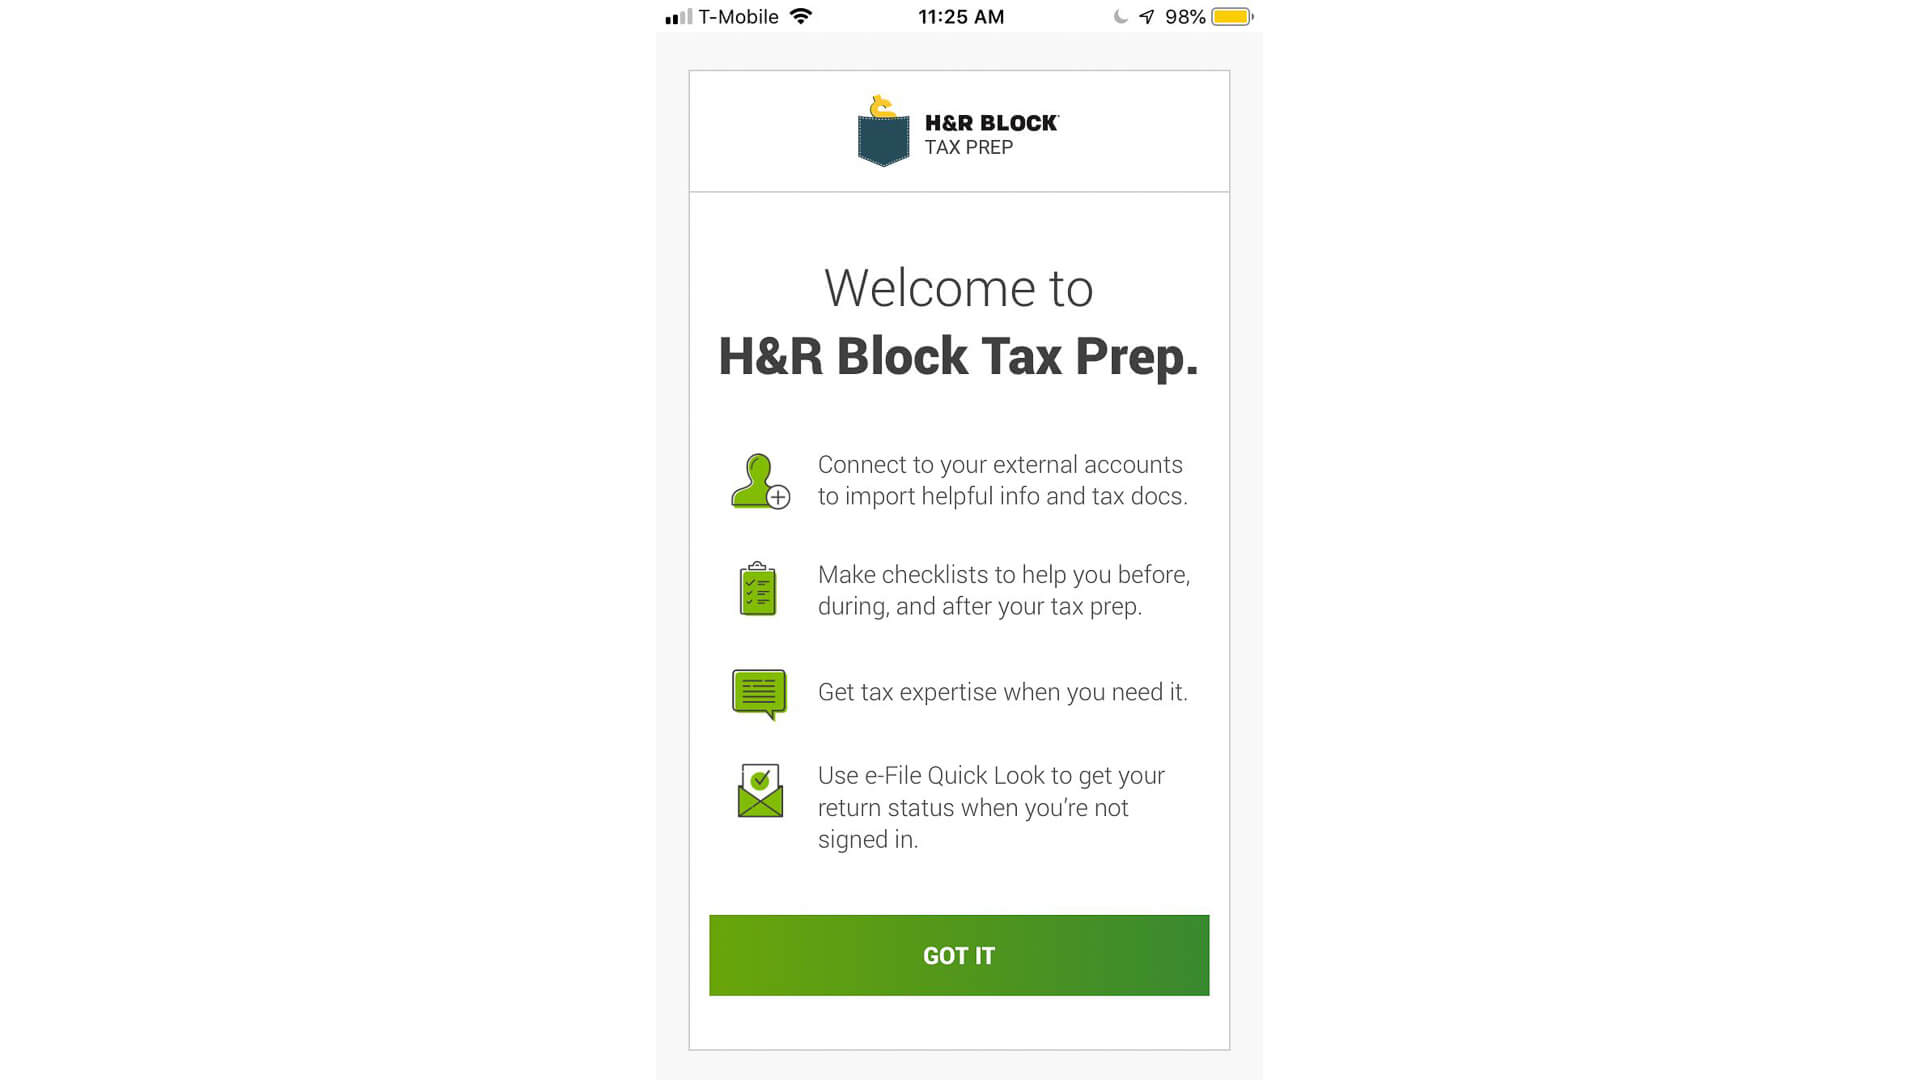 HR Block Tax Prep mobile app